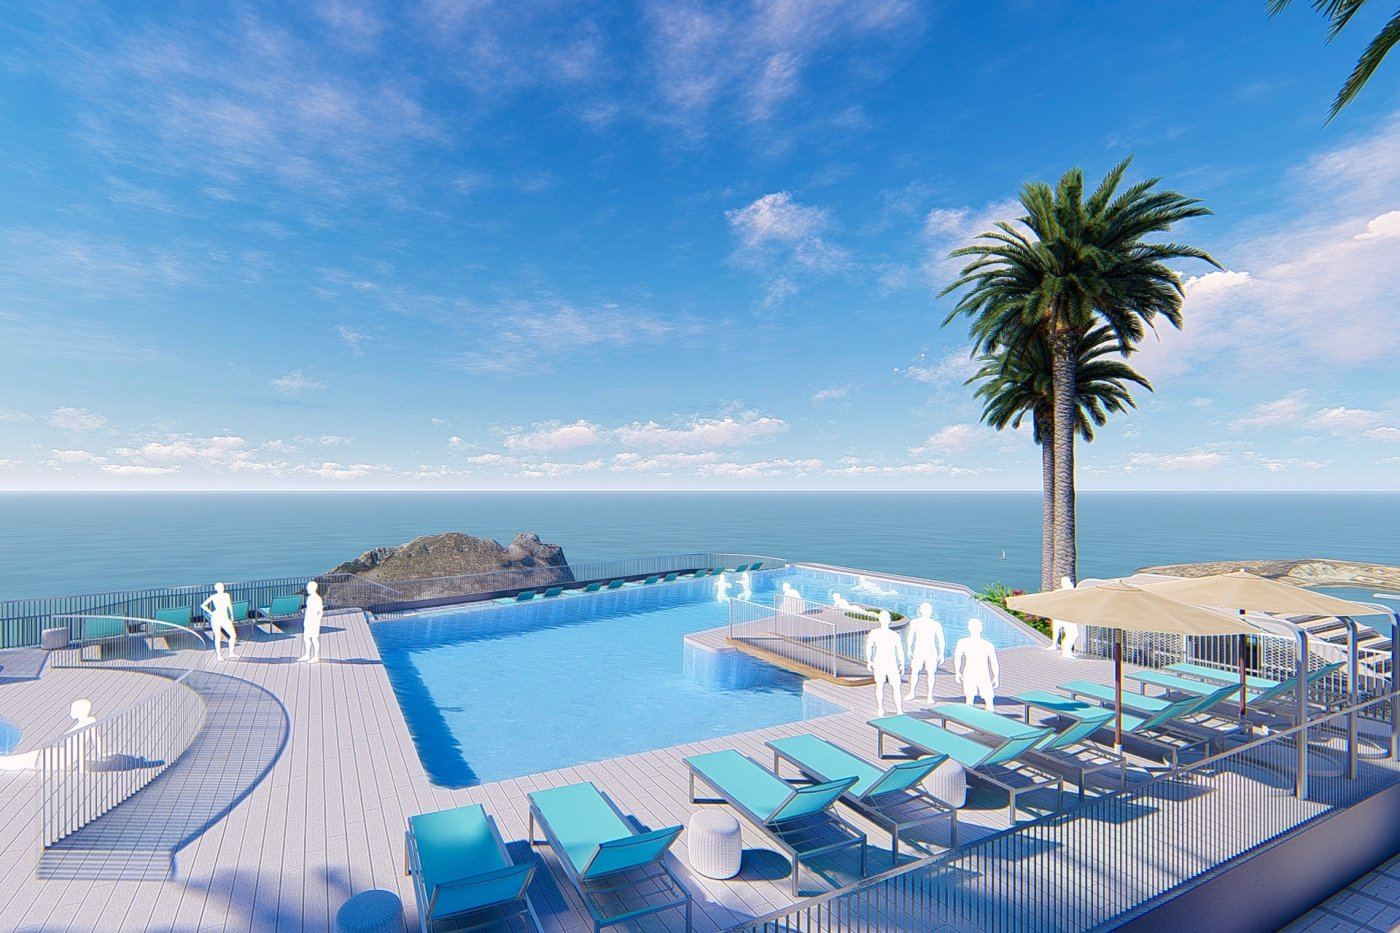 Image 6 Apartment ref 3265-03120 for sale in Isea Calma Spain - Quality Homes Costa Cálida